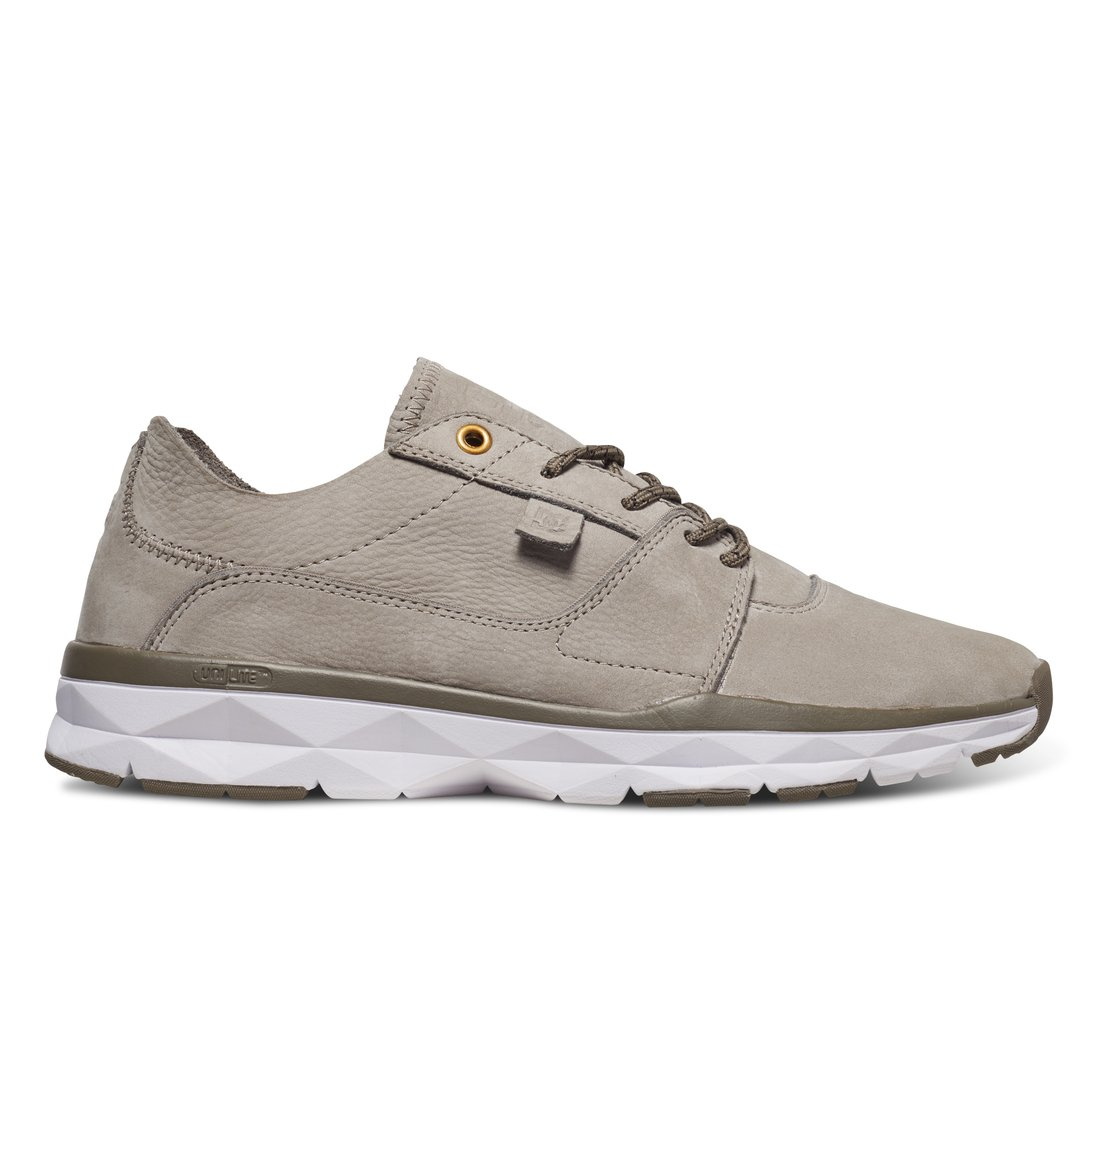 DC Shoes Chaussures PLAYER SE DC Shoes soldes